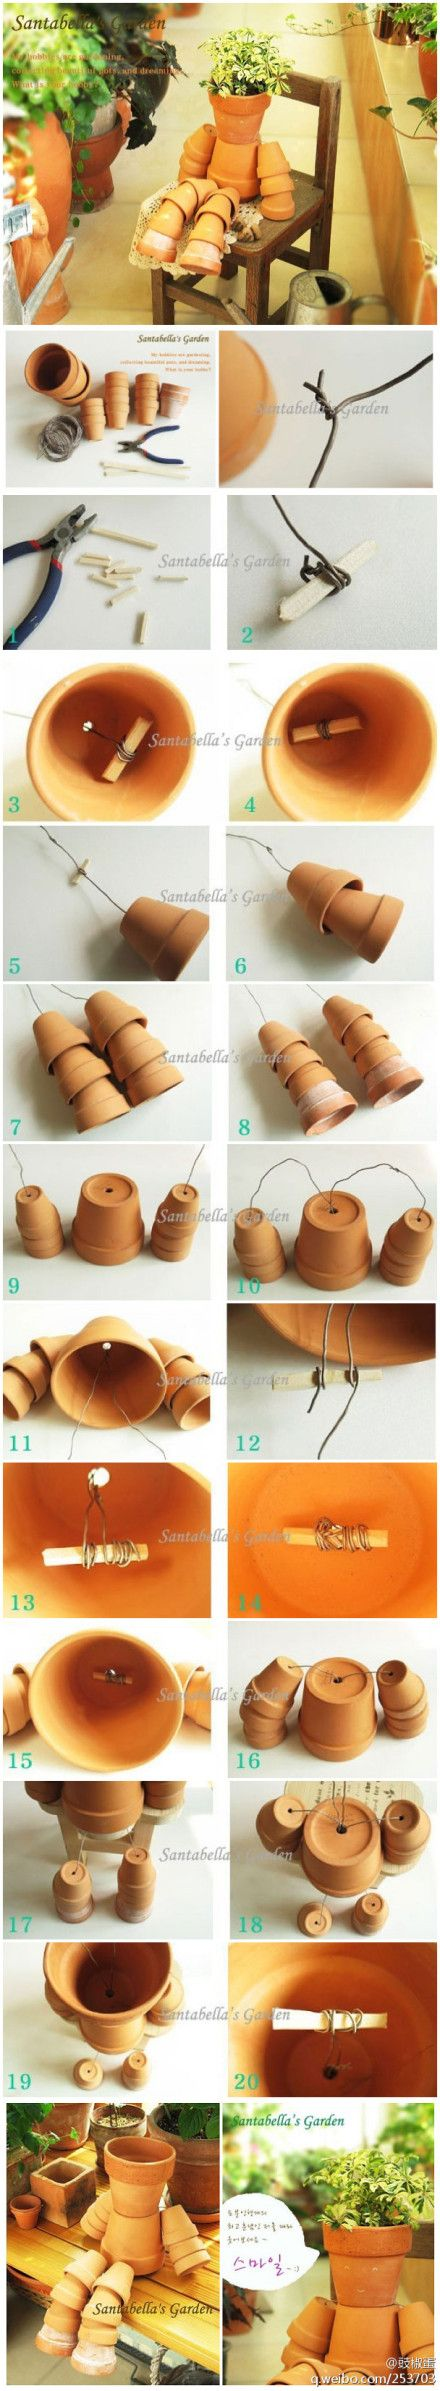 Diy How To Build A Pot Person For Your Garden Craft